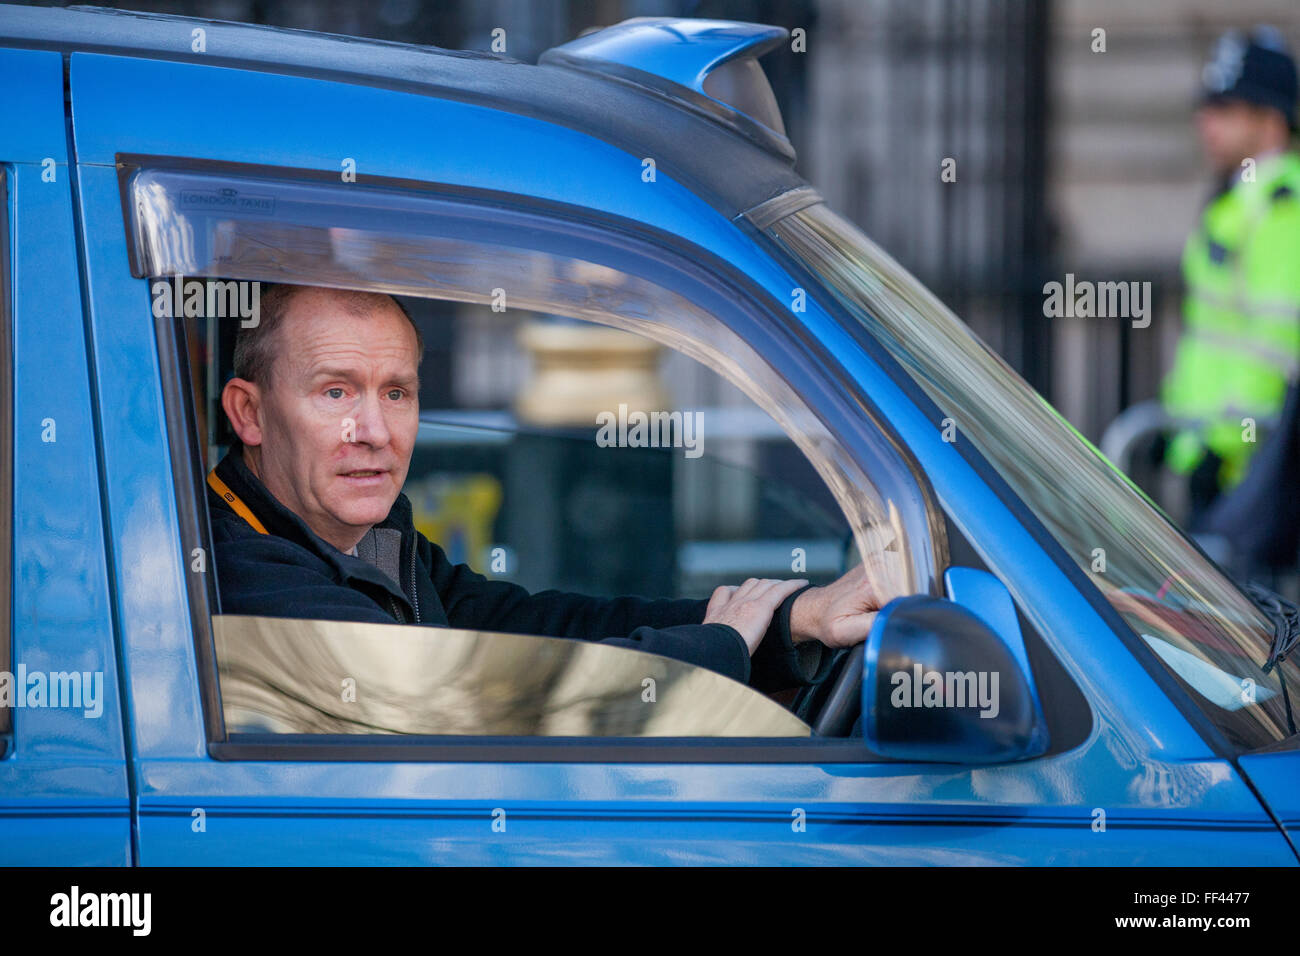 London, UK. 10th February 2016. A 'black cab' taxi driver during a go-slow protest in Whitehall against lack of Stock Photo